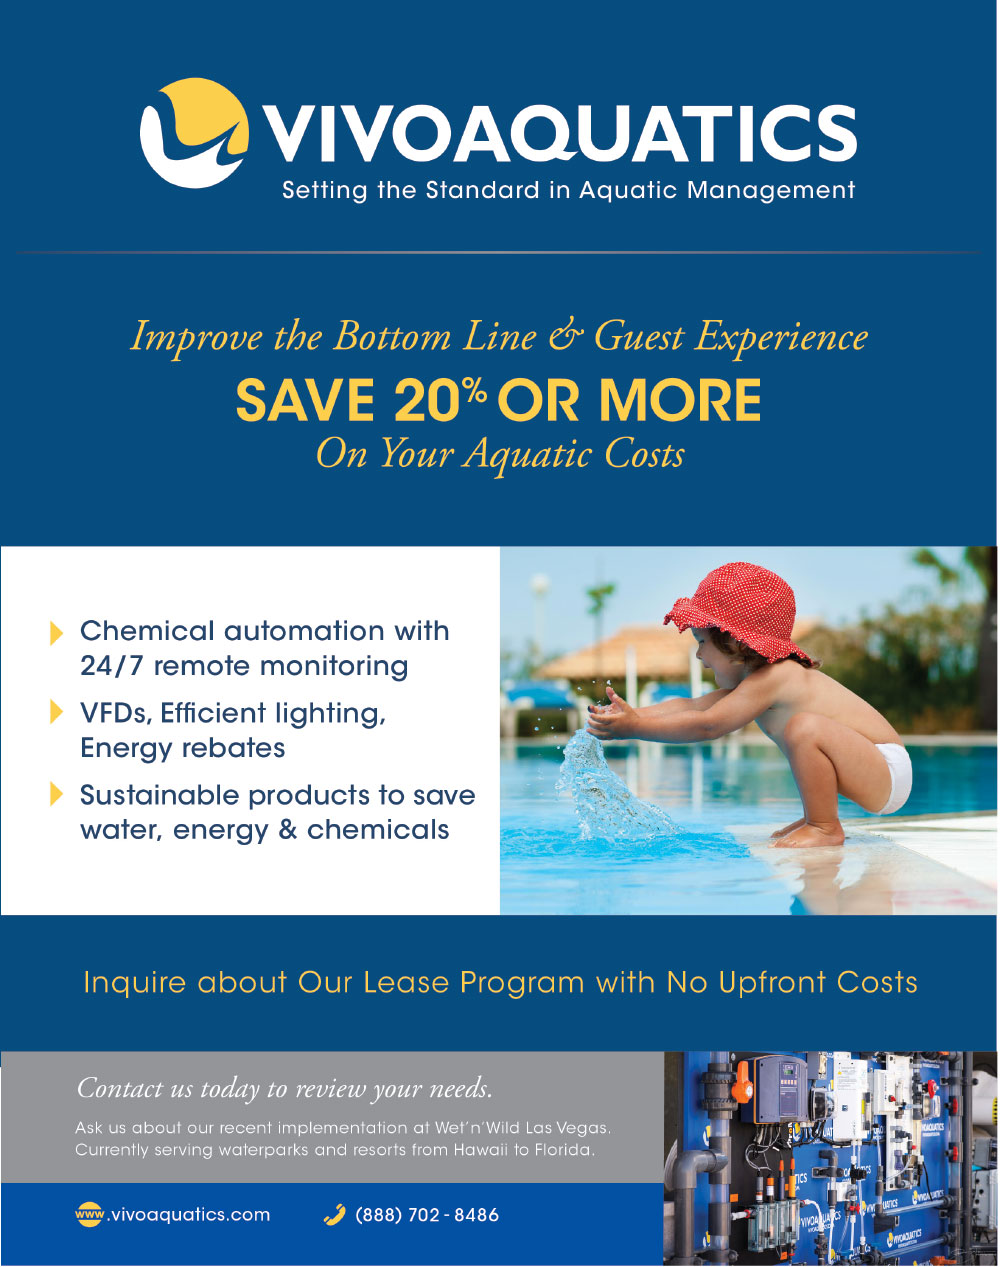 Vivo Aquatics Trade Magazine Advertisement